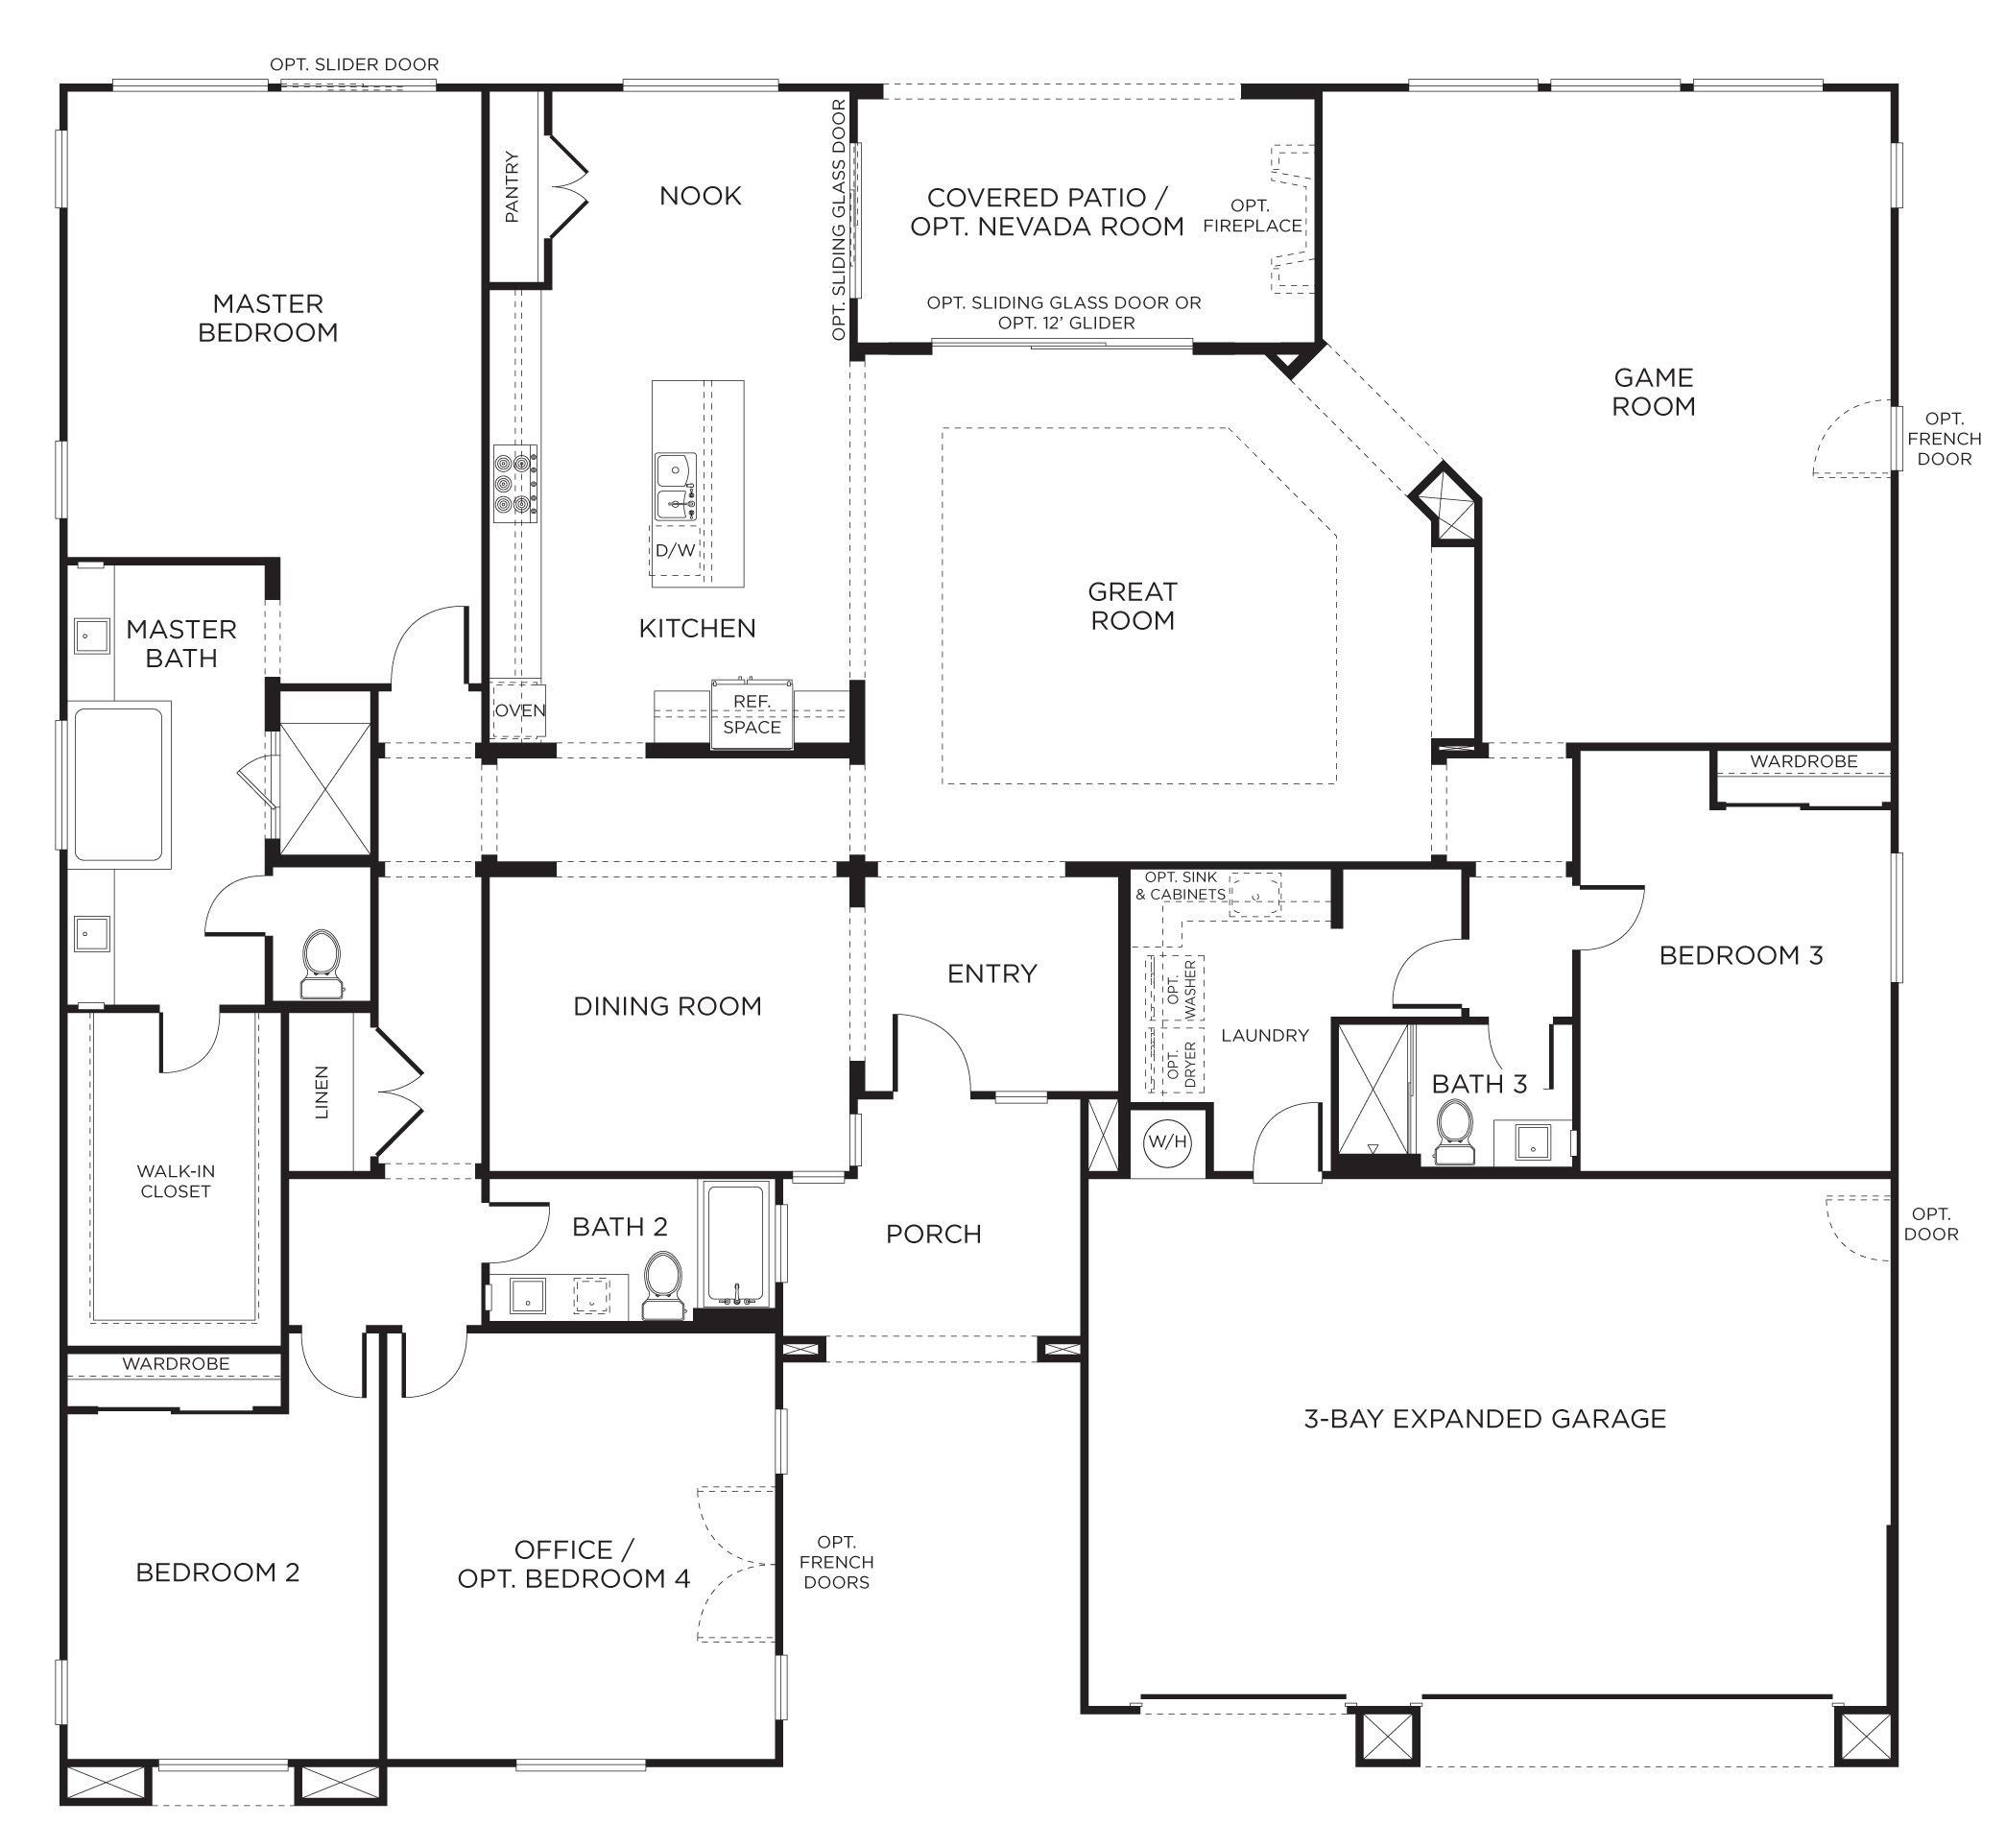 Floorplan 2 3 4 bedrooms 3 bathrooms 3400 square feet Sample 2 bedroom house plans